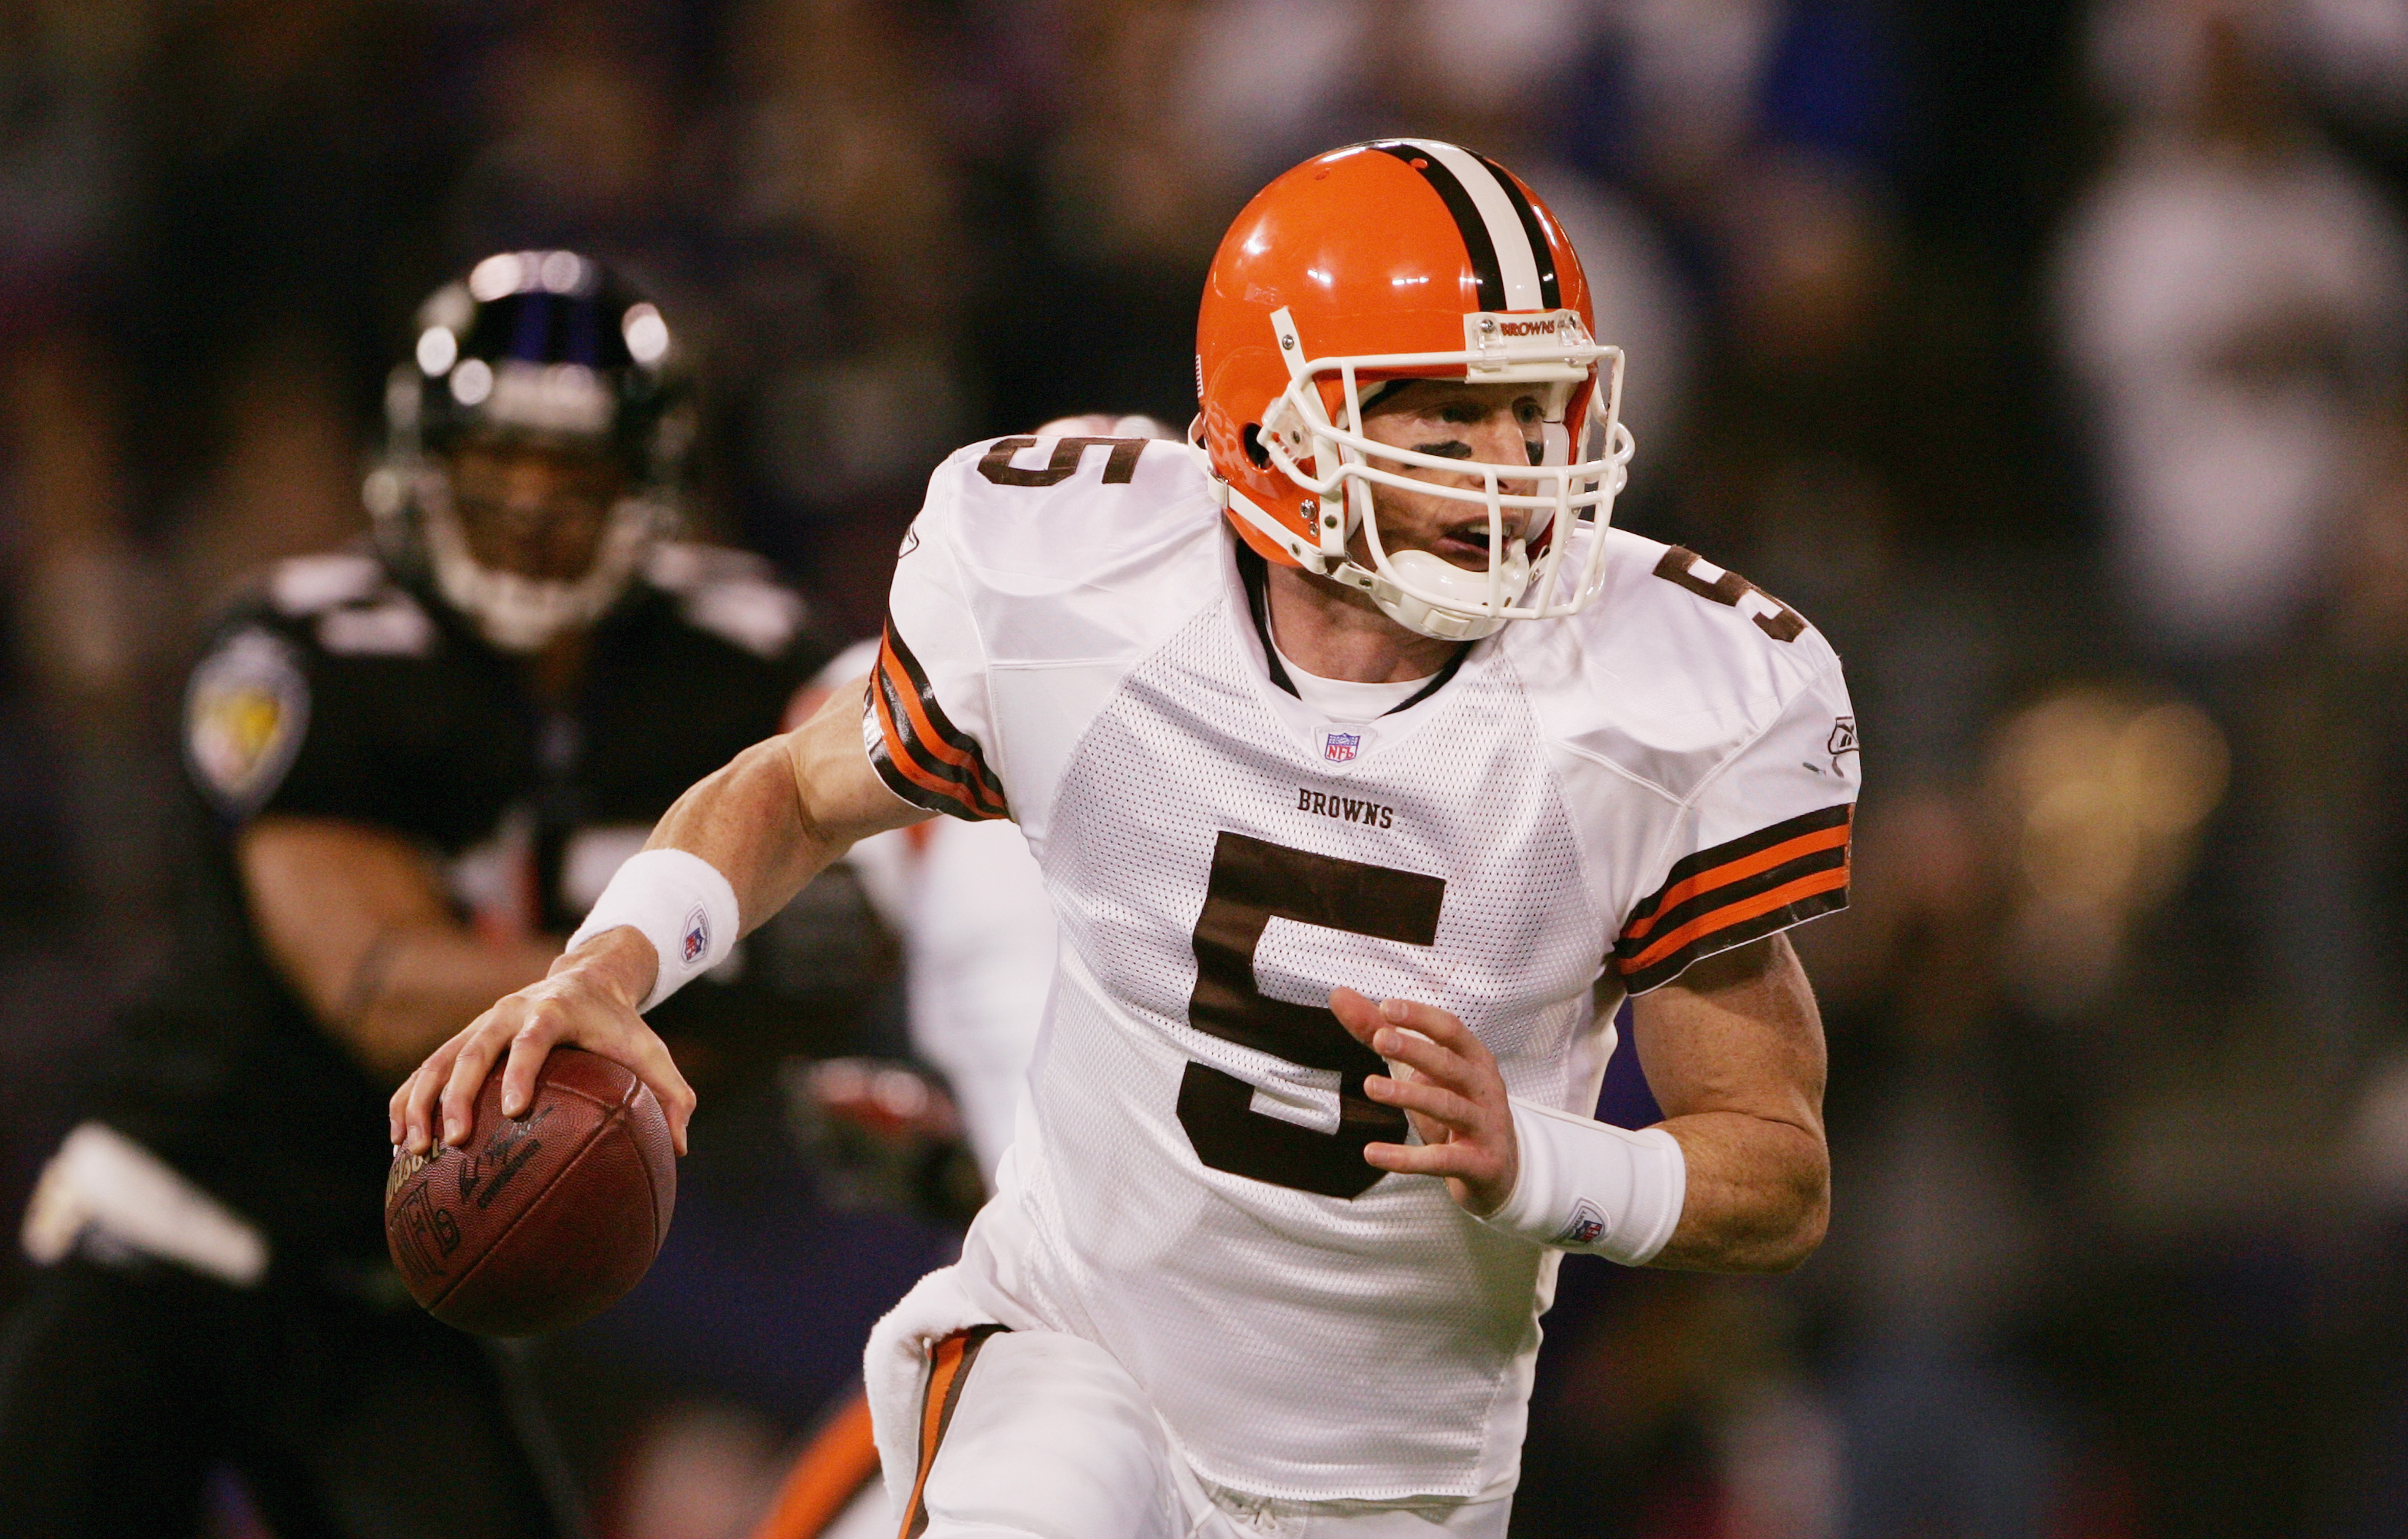 BALTIMORE - NOVEMBER 7:  Quarterback Jeff Garcia #5 of the Cleveland Browns looks downfield against the Baltimore Ravens at M&T Bank Stadium on November 7, 2004 in Baltimore, Maryland. The Ravens defeated the Browns 27-13.  (Photo by Doug Pensinger/Getty